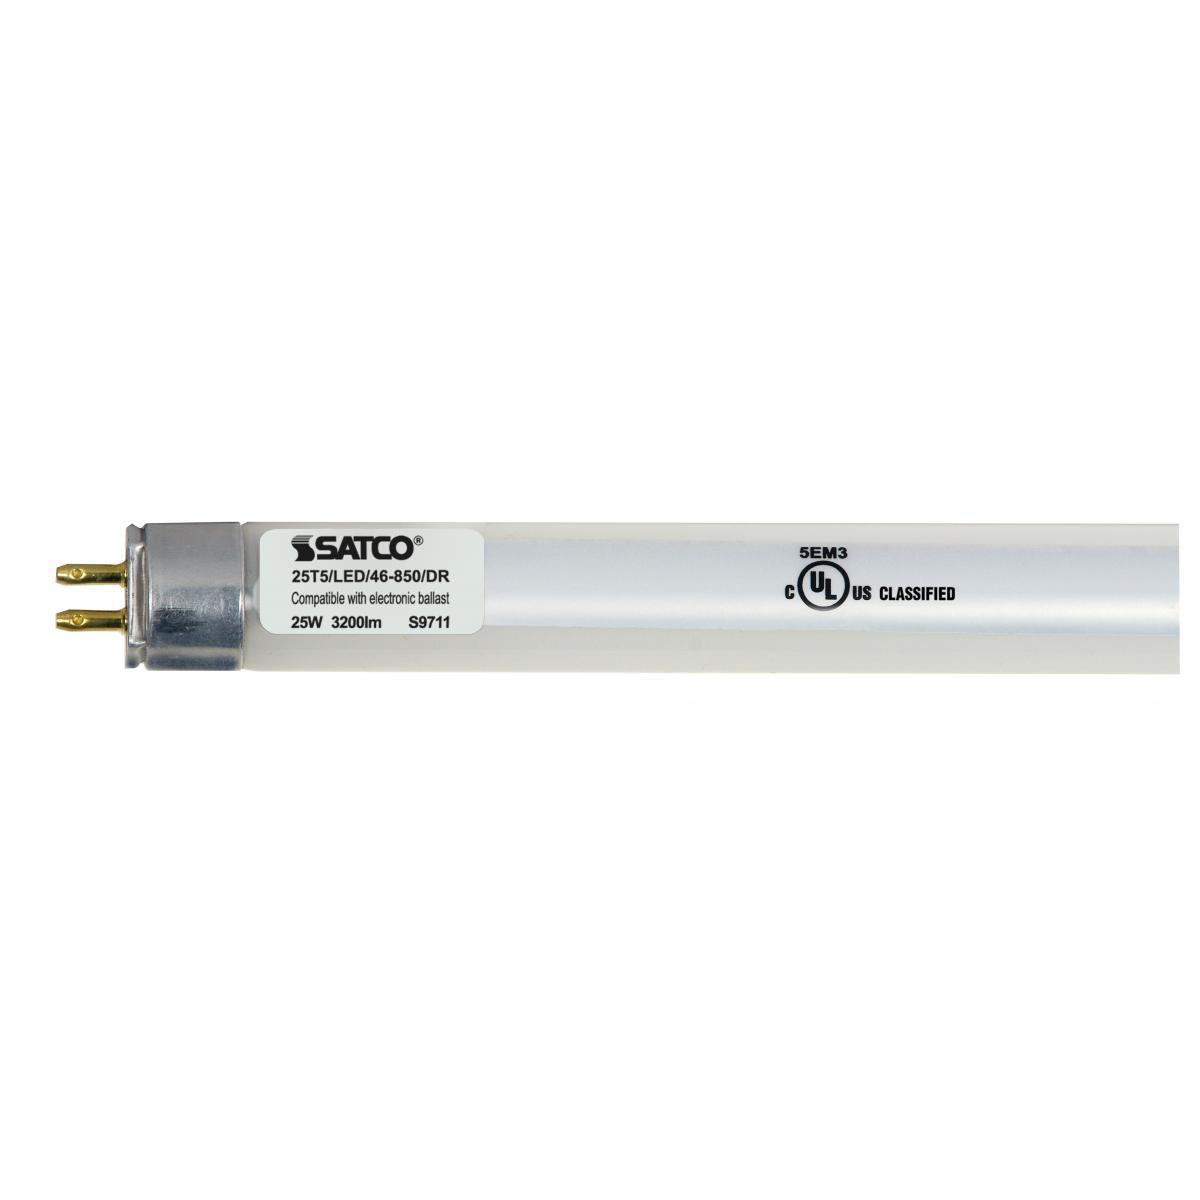 SATCO 25W LED T5 - 4 FT Fluorescent Tube Replacement - Bi...